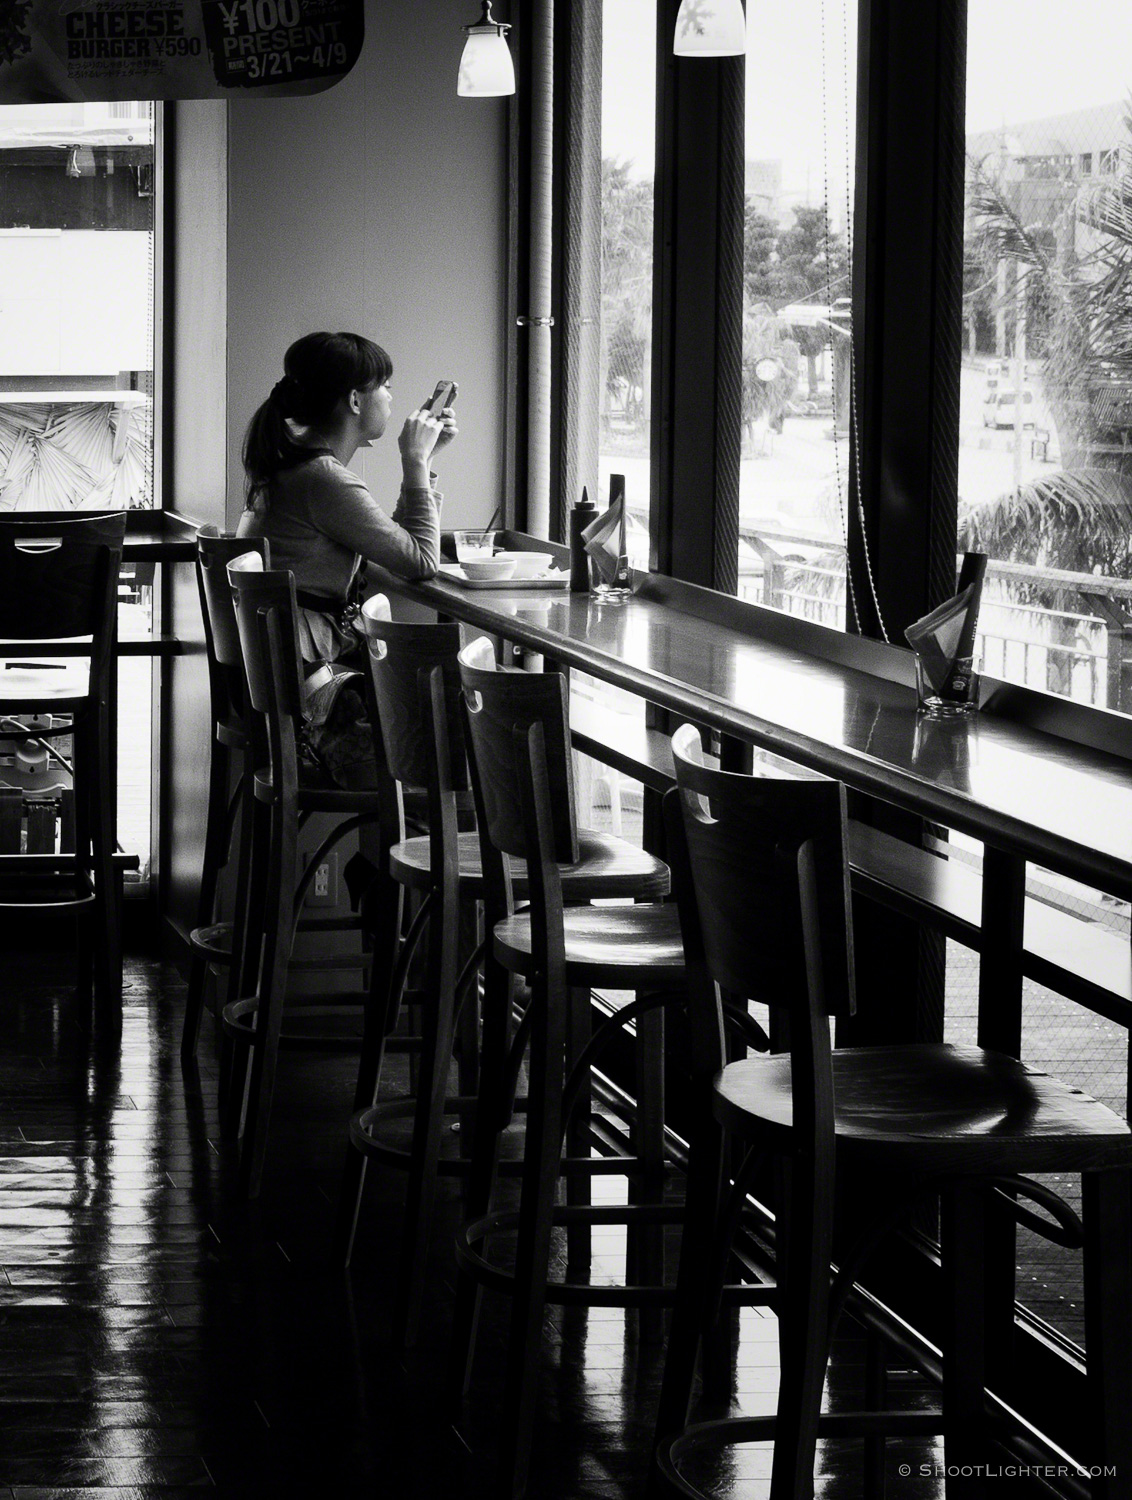 Fuji x100, ISO500, f8, 1/60 sec. Edited and converted to B&W with Adobe Lightroom.